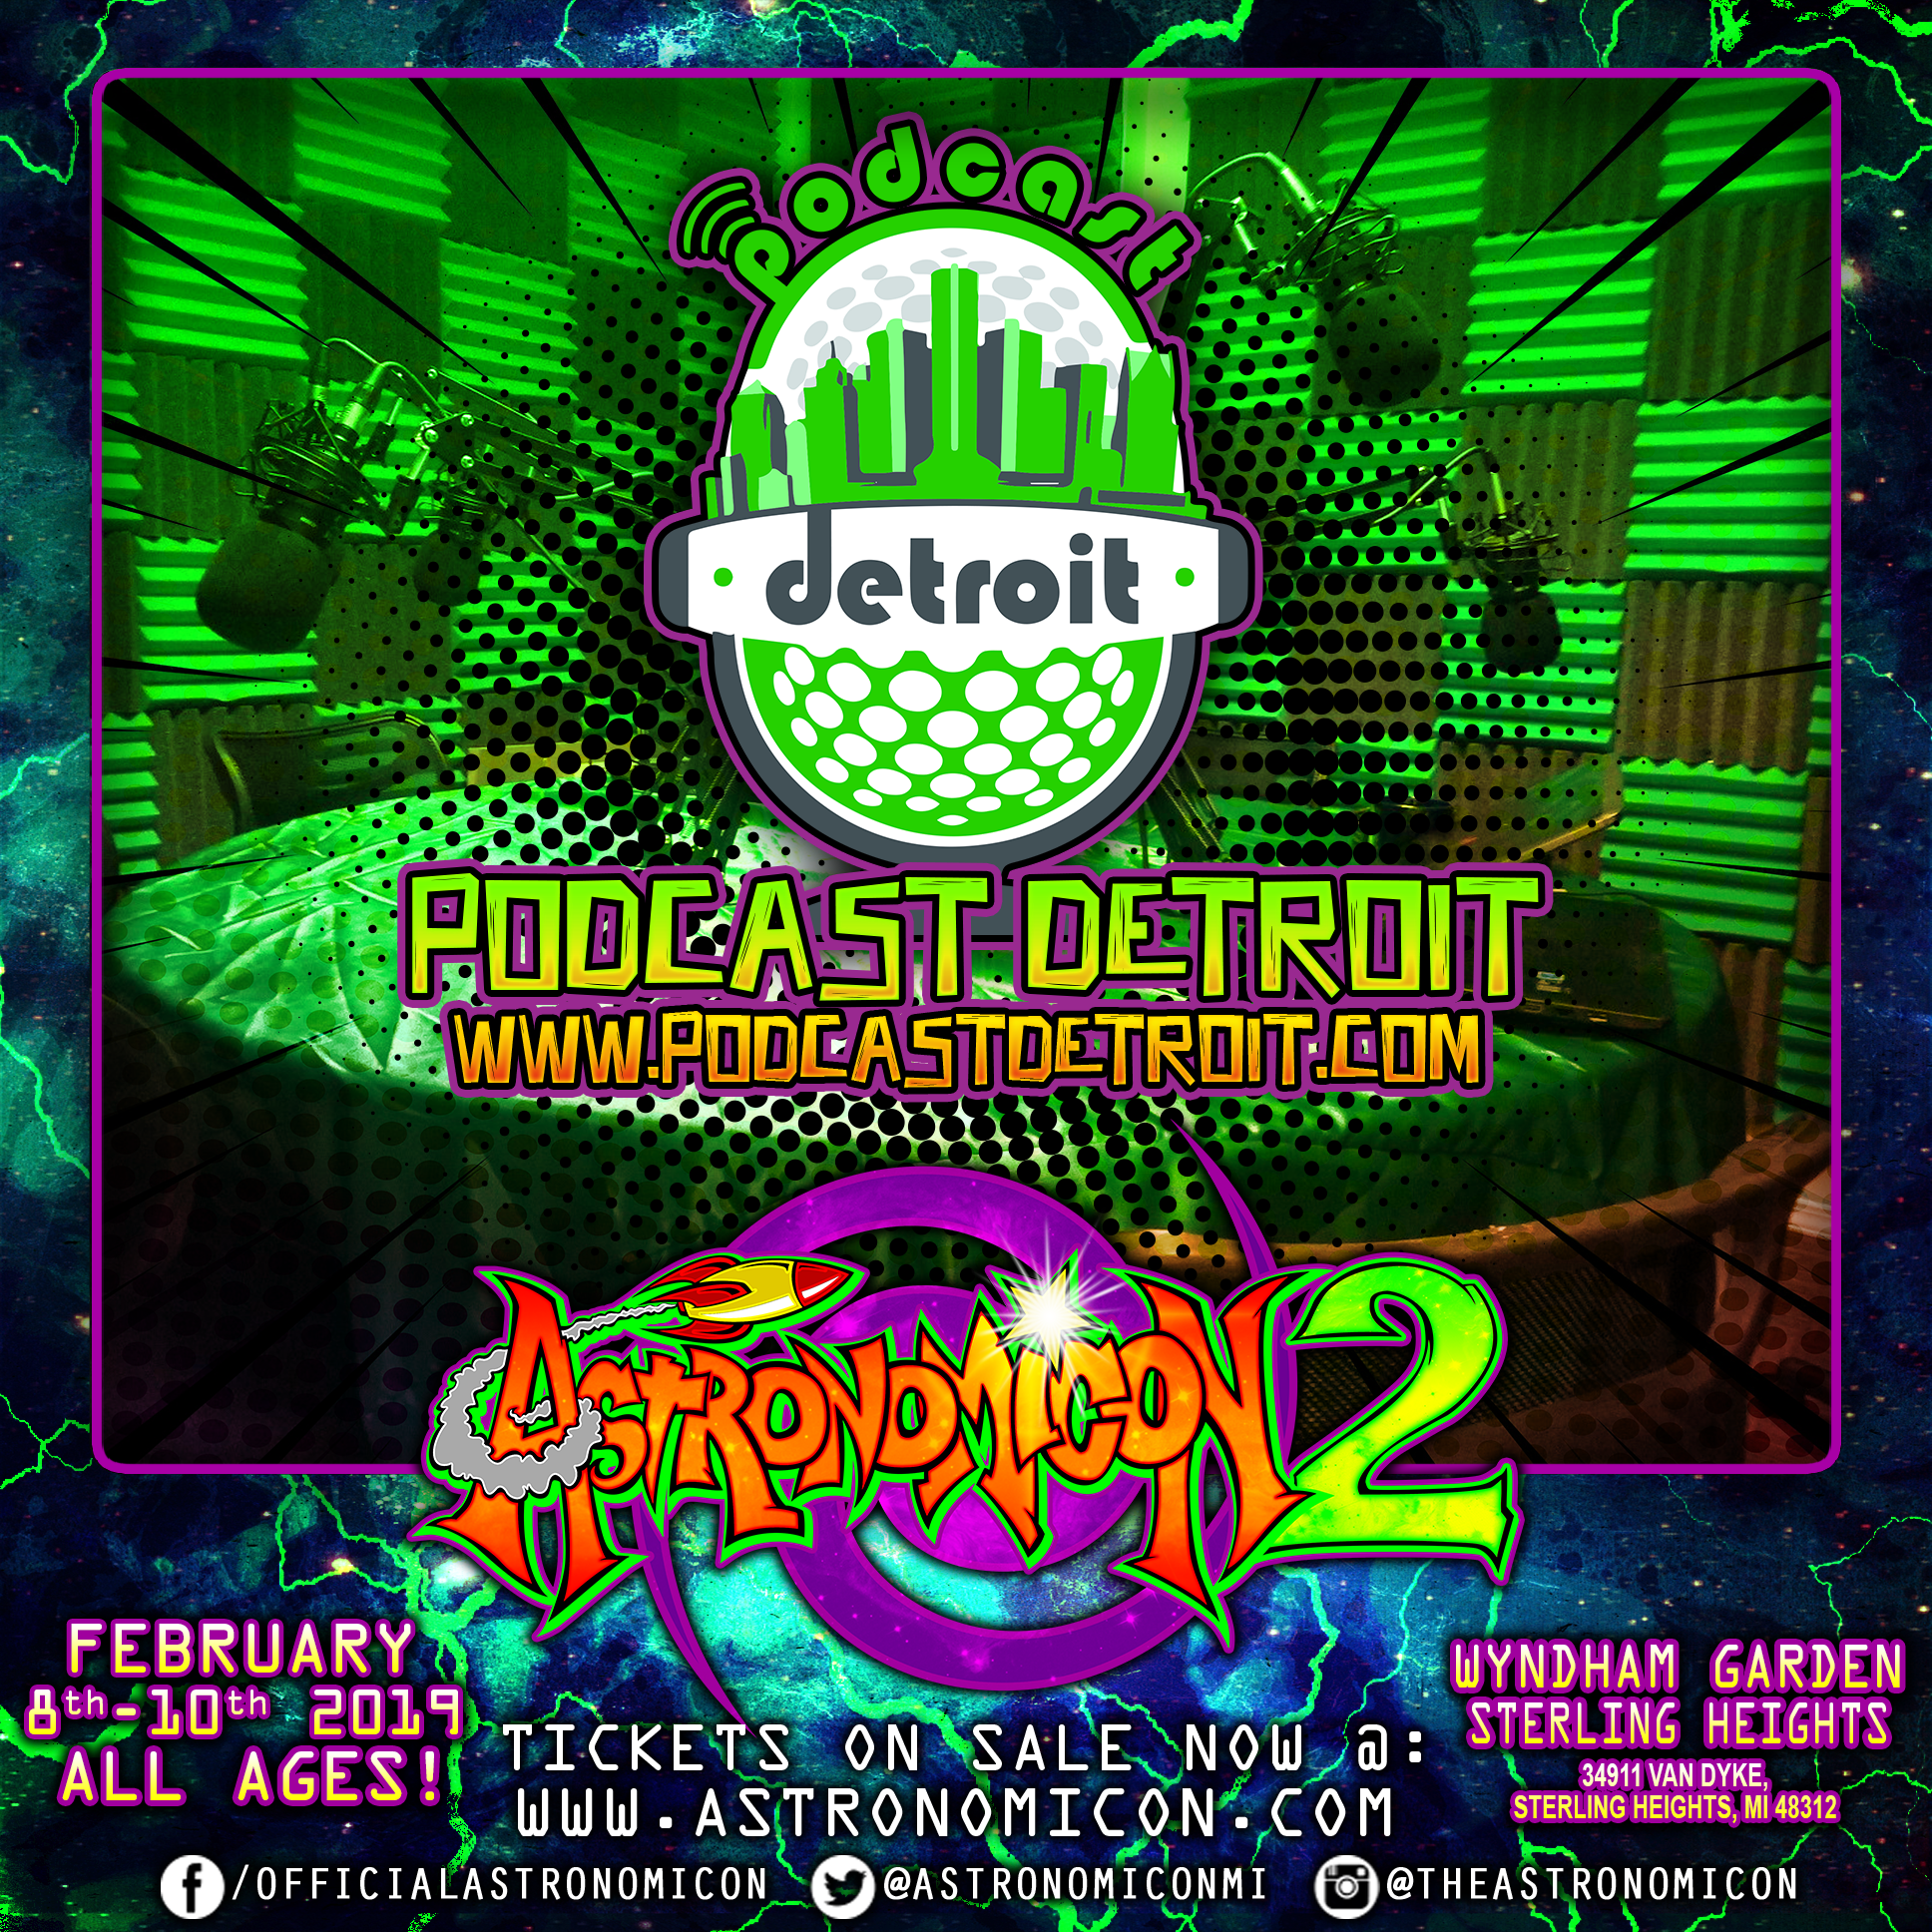 Astronomicon 2 Podcast Detroit IG Ad.png